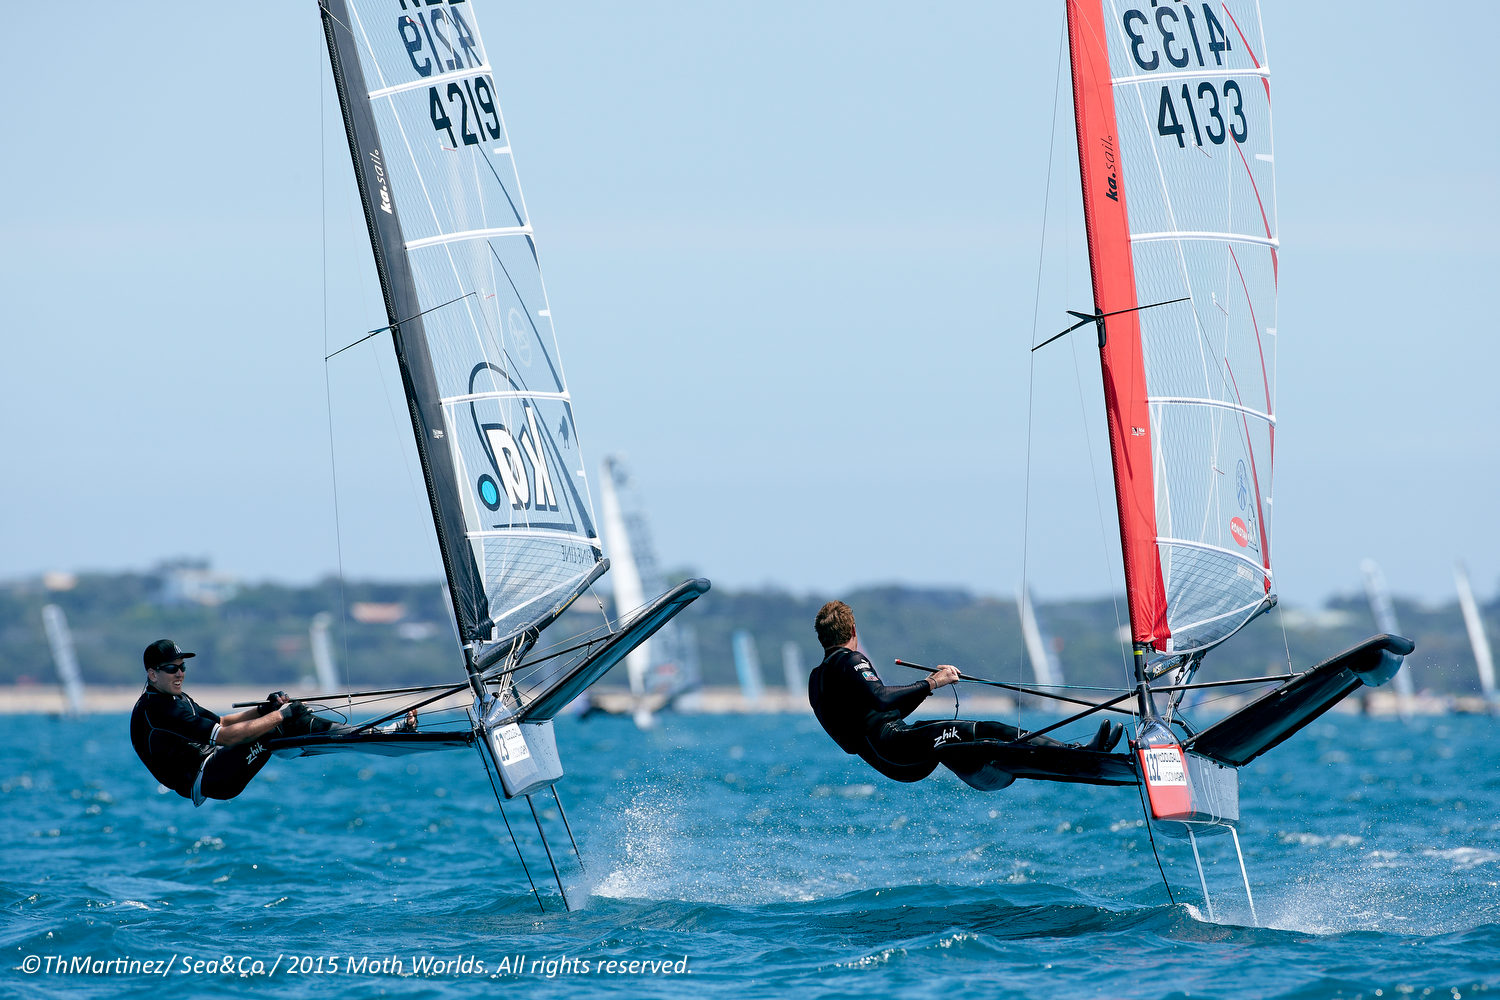 2015 Moth Worlds  Day 2.  023,Peter BURLING,NZL 4219, 132,Tom SLINGSBY,AUS 4133